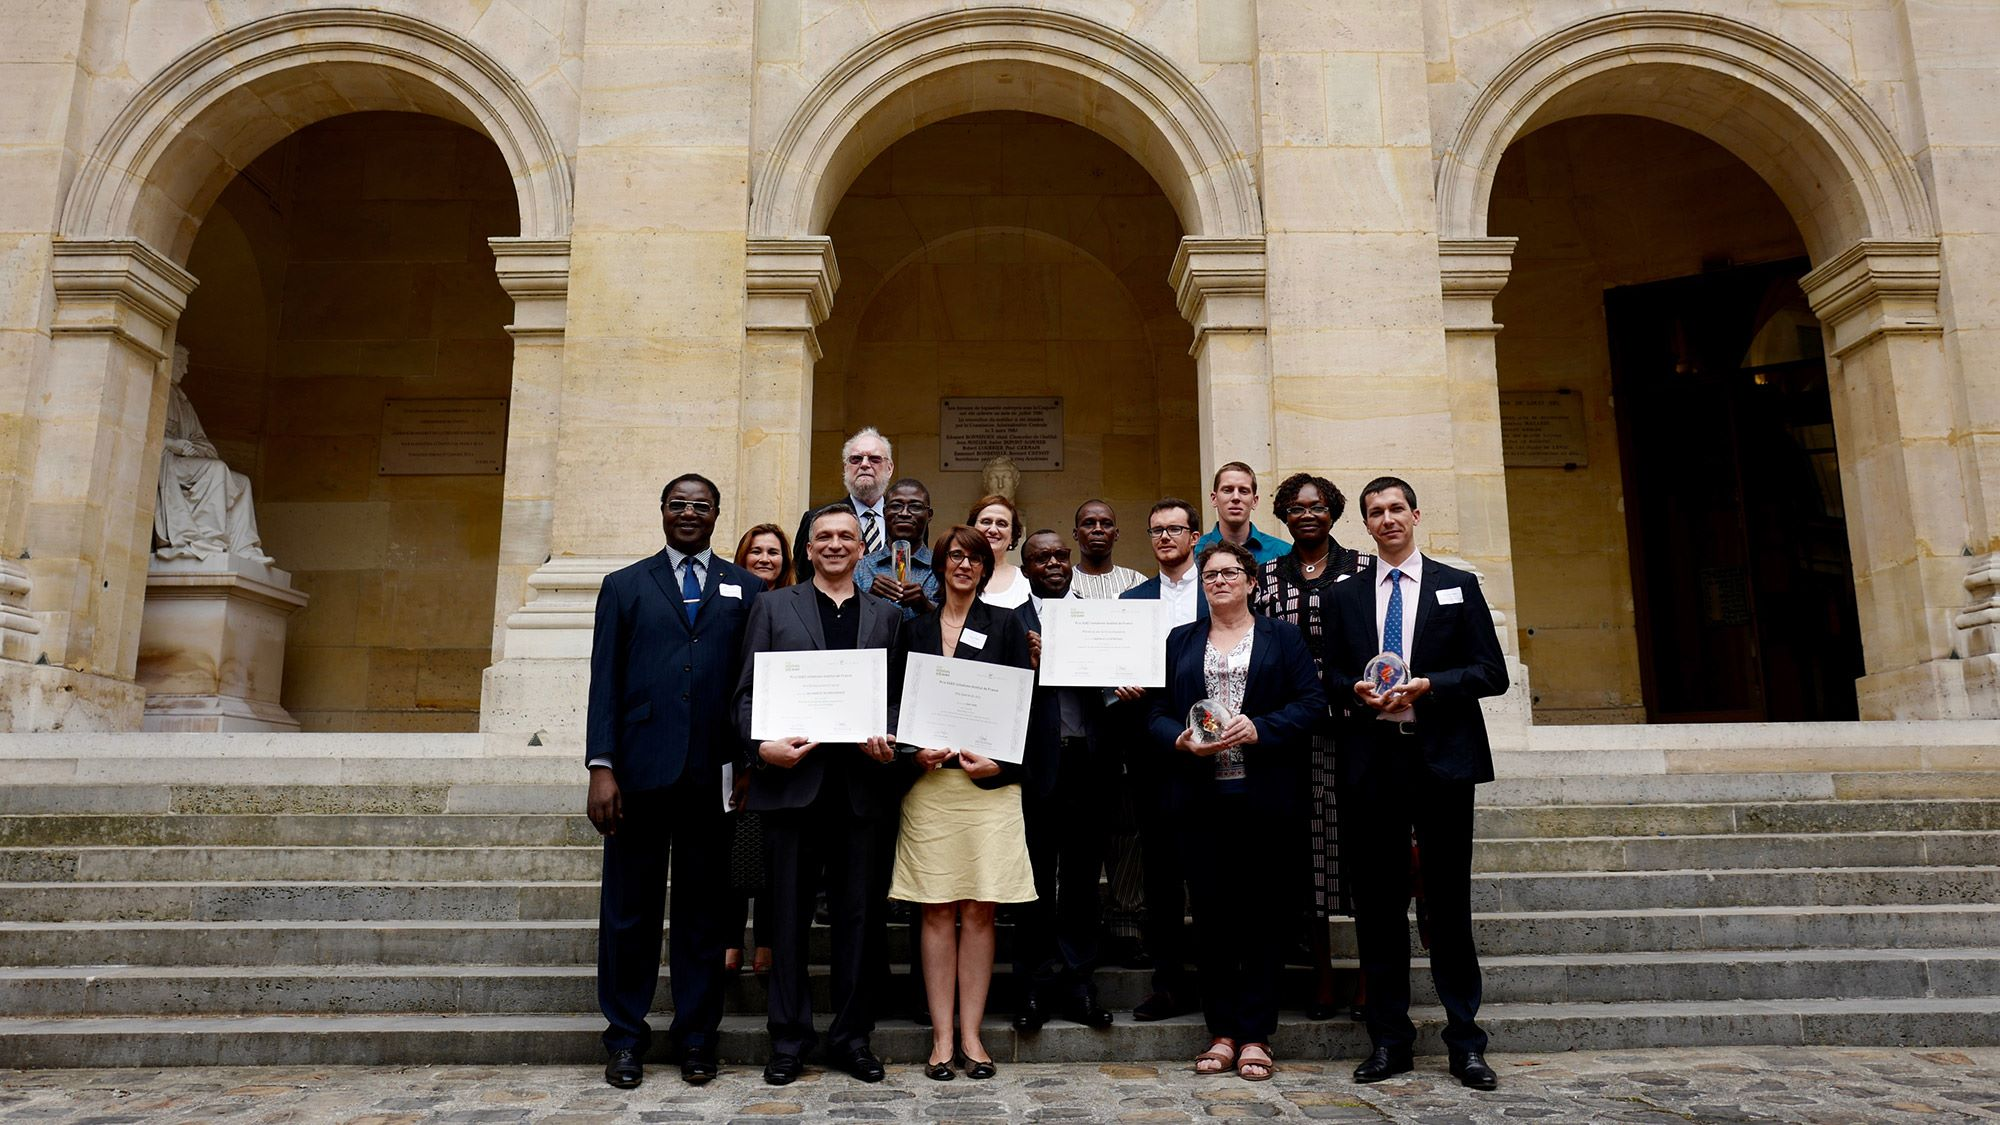 SUEZ initiatives Institut de France Prize 6th Edition